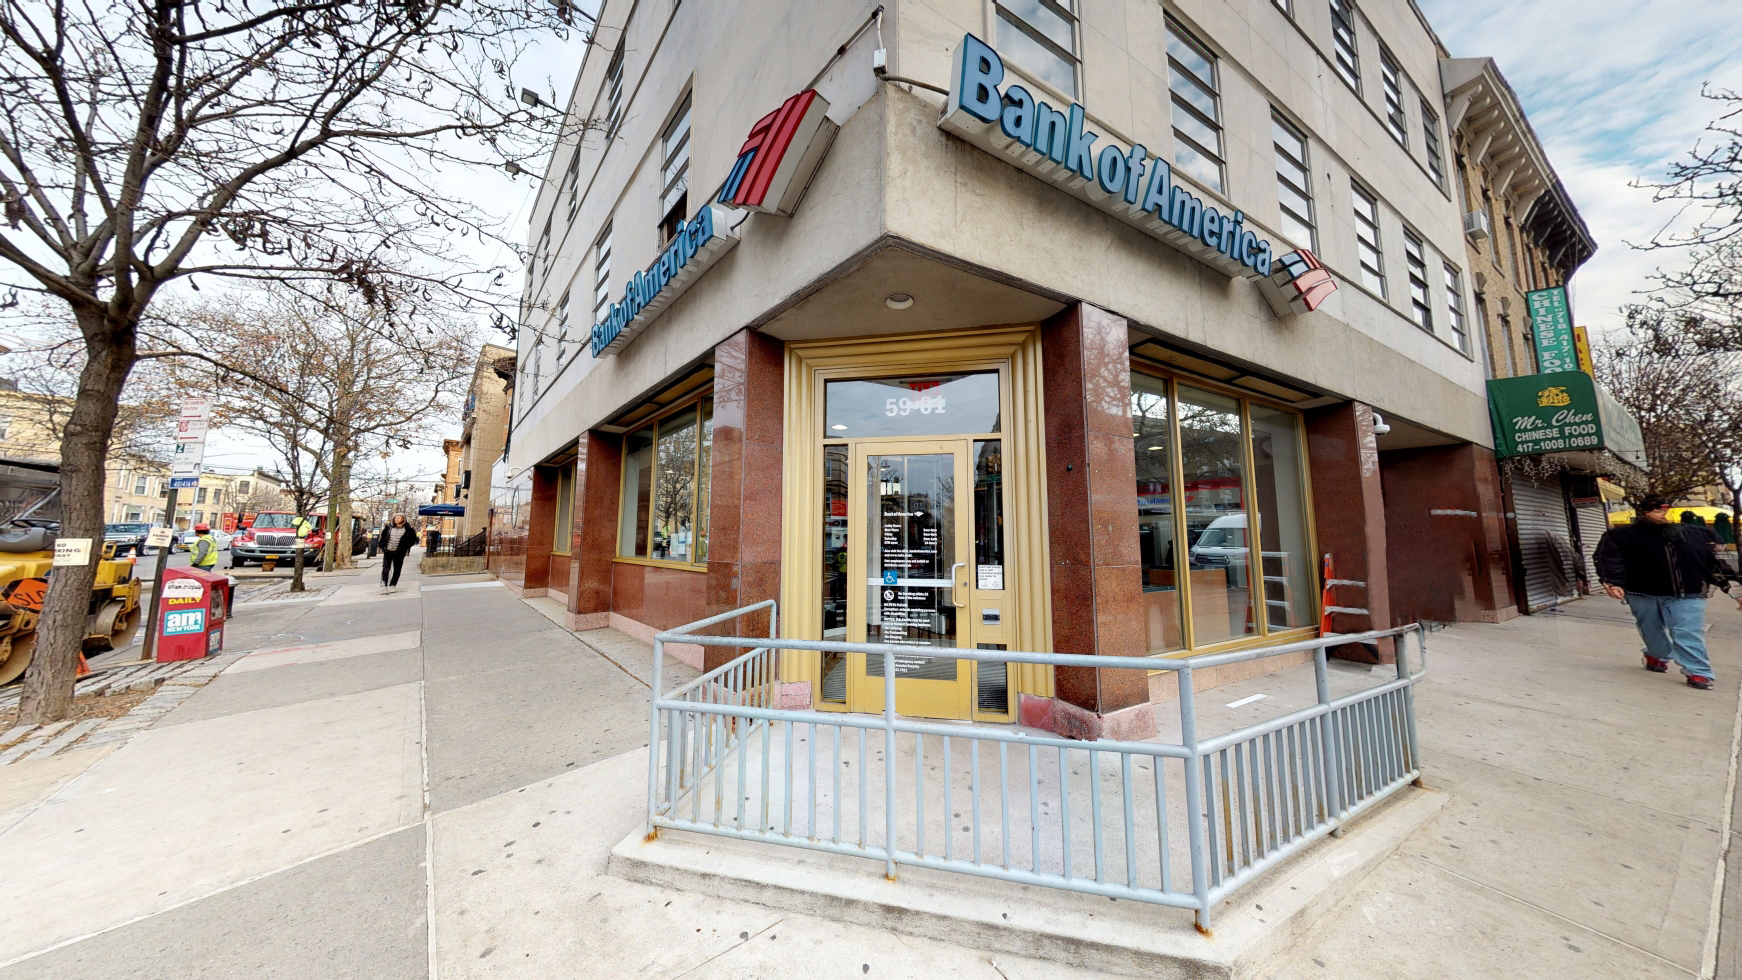 Bank of America financial center with walk-up ATM | 5901 Myrtle Ave, Ridgewood, NY 11385